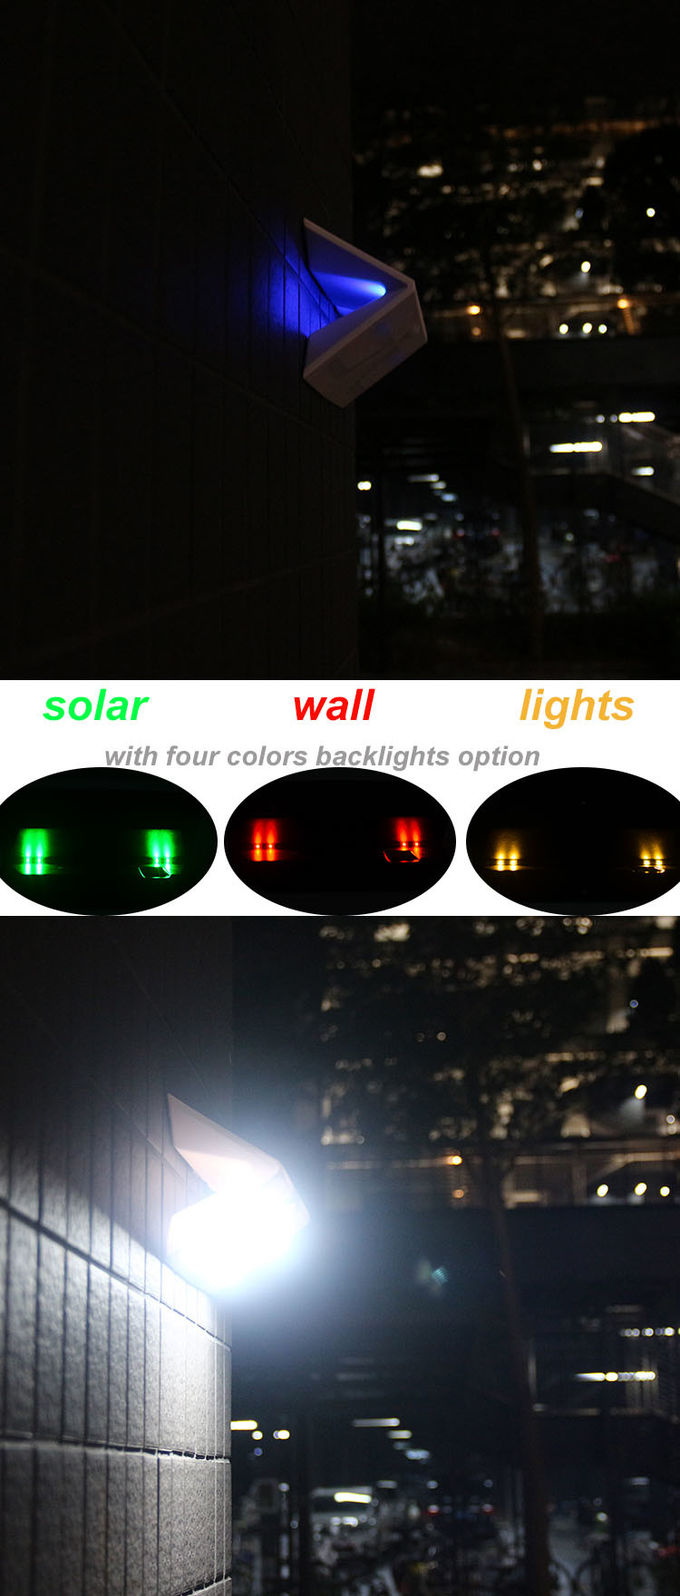 Wall Mounted High Power Led Outdoor Solar Motion Sensor Light Waterproof 500lm Lumen